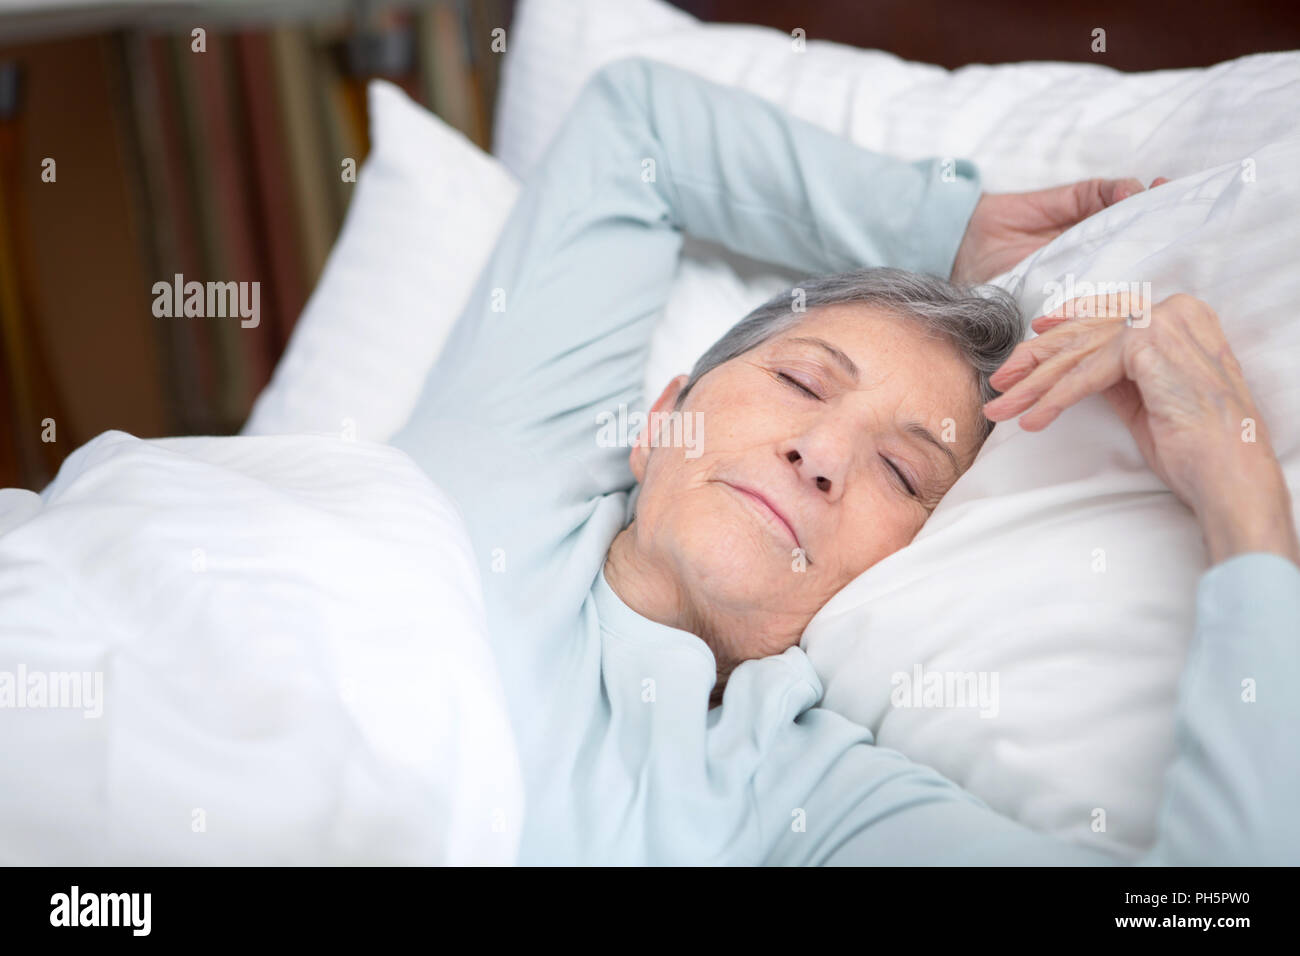 Elderly woman getting a good nights rest. - Stock Image